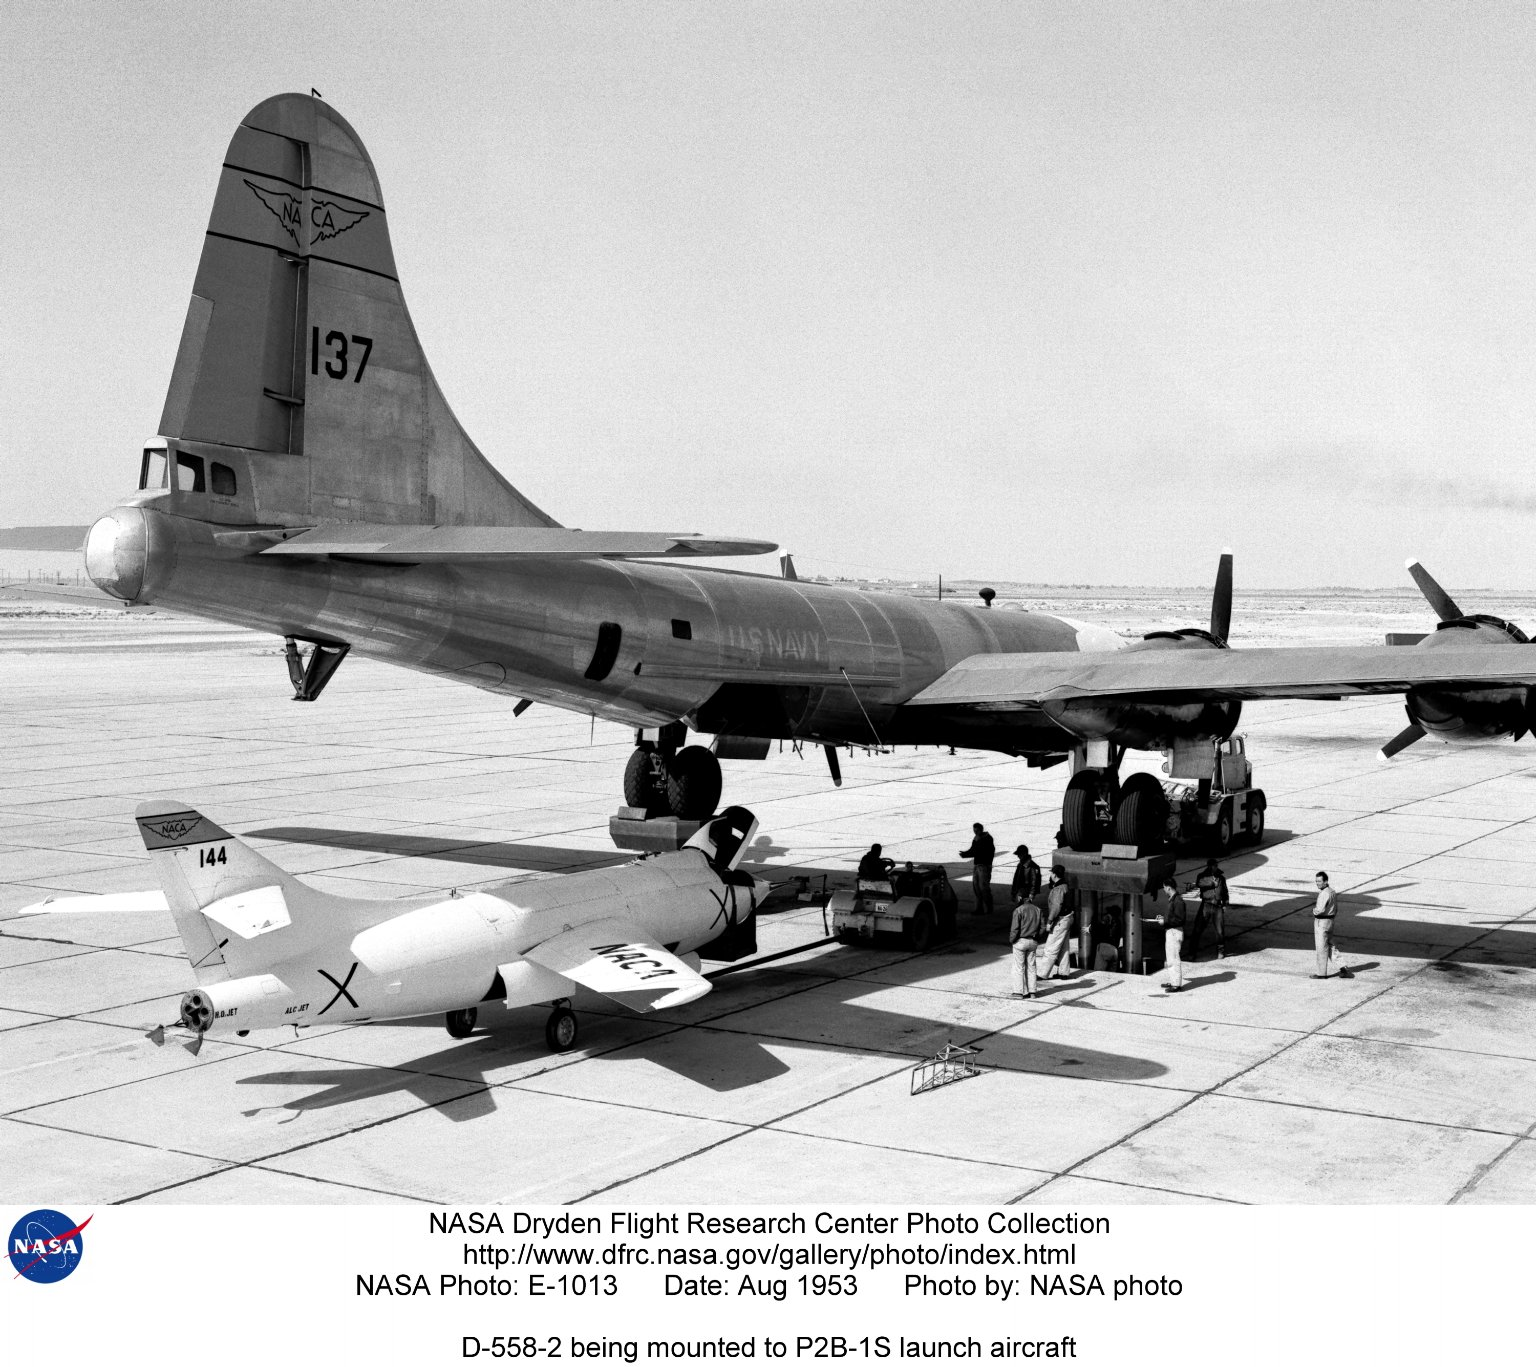 D-558-2 being mounted to P2B-1S launch aircraft